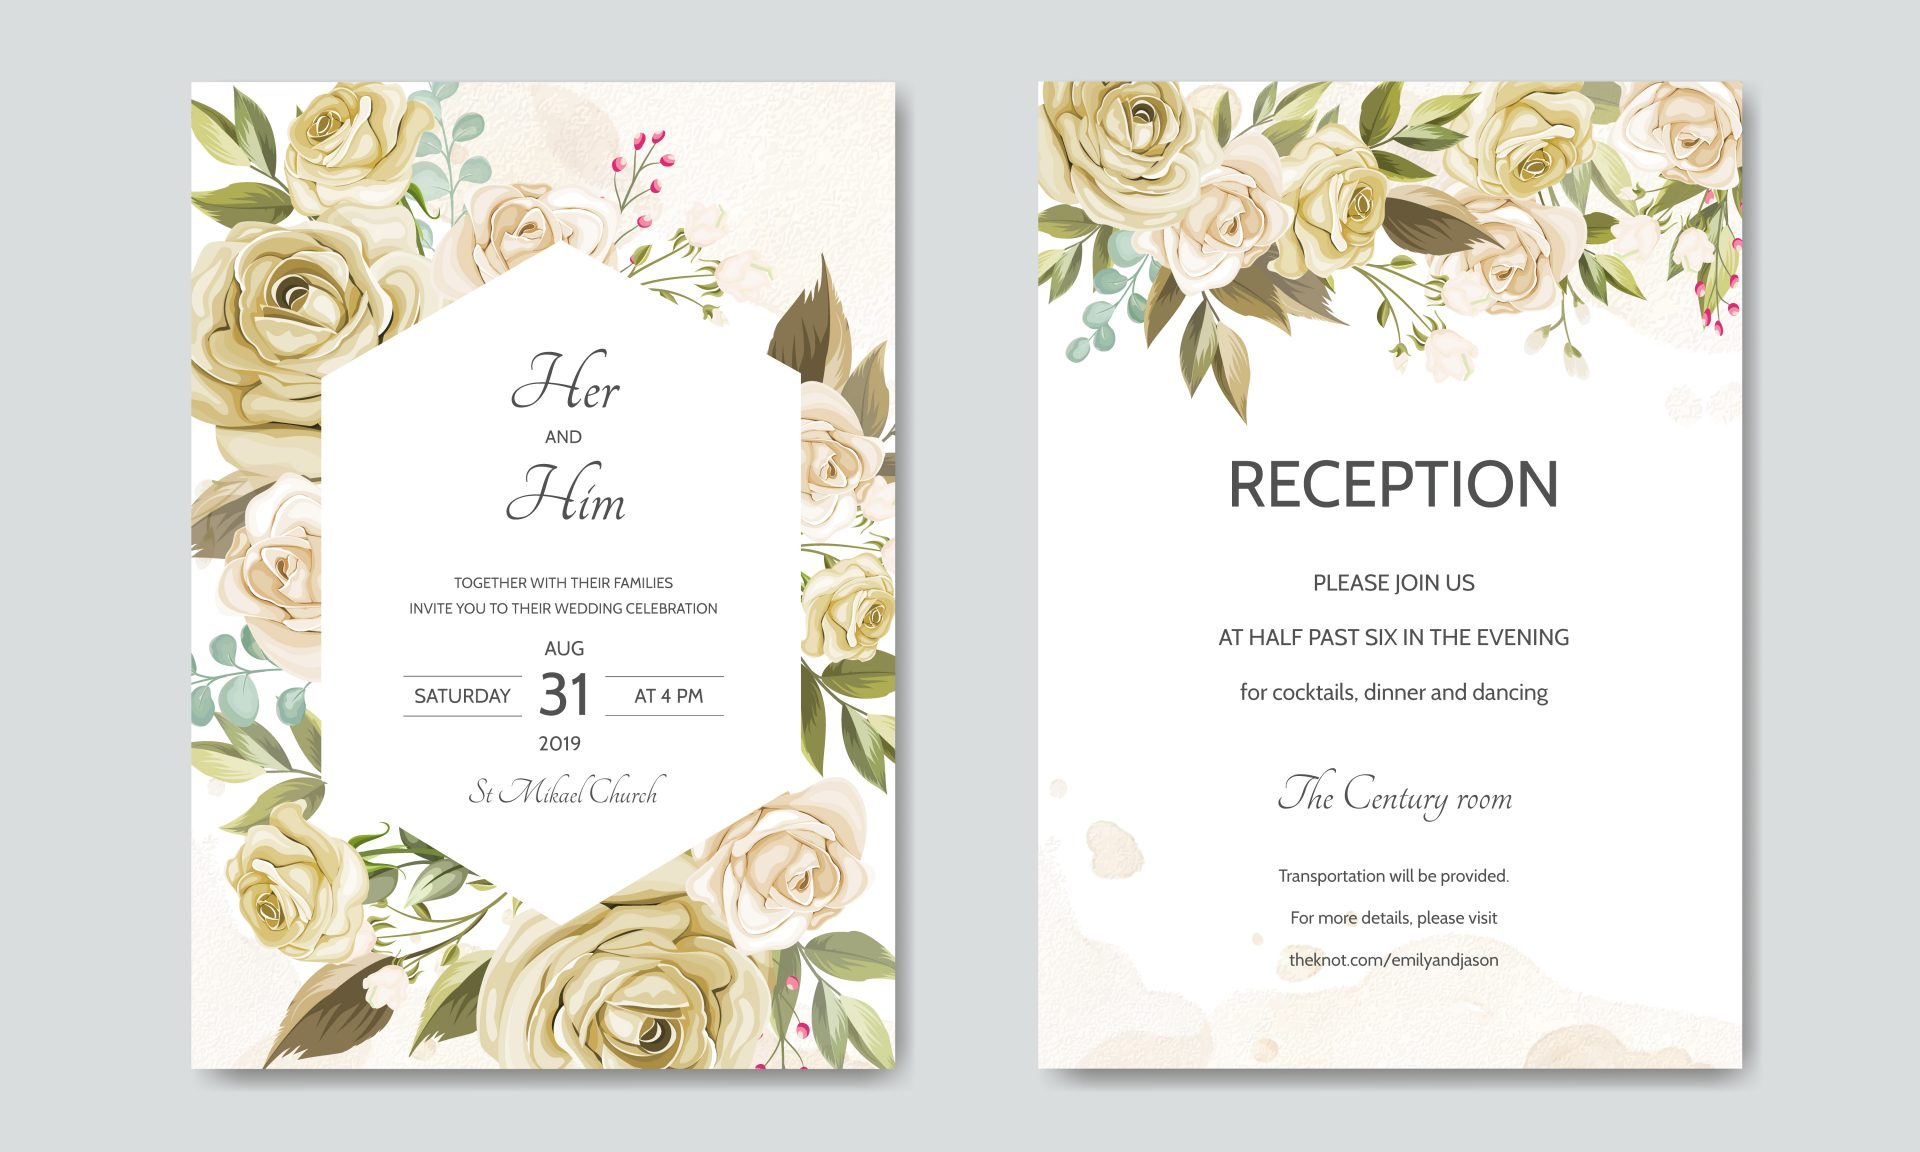 A sample of a wedding invitation